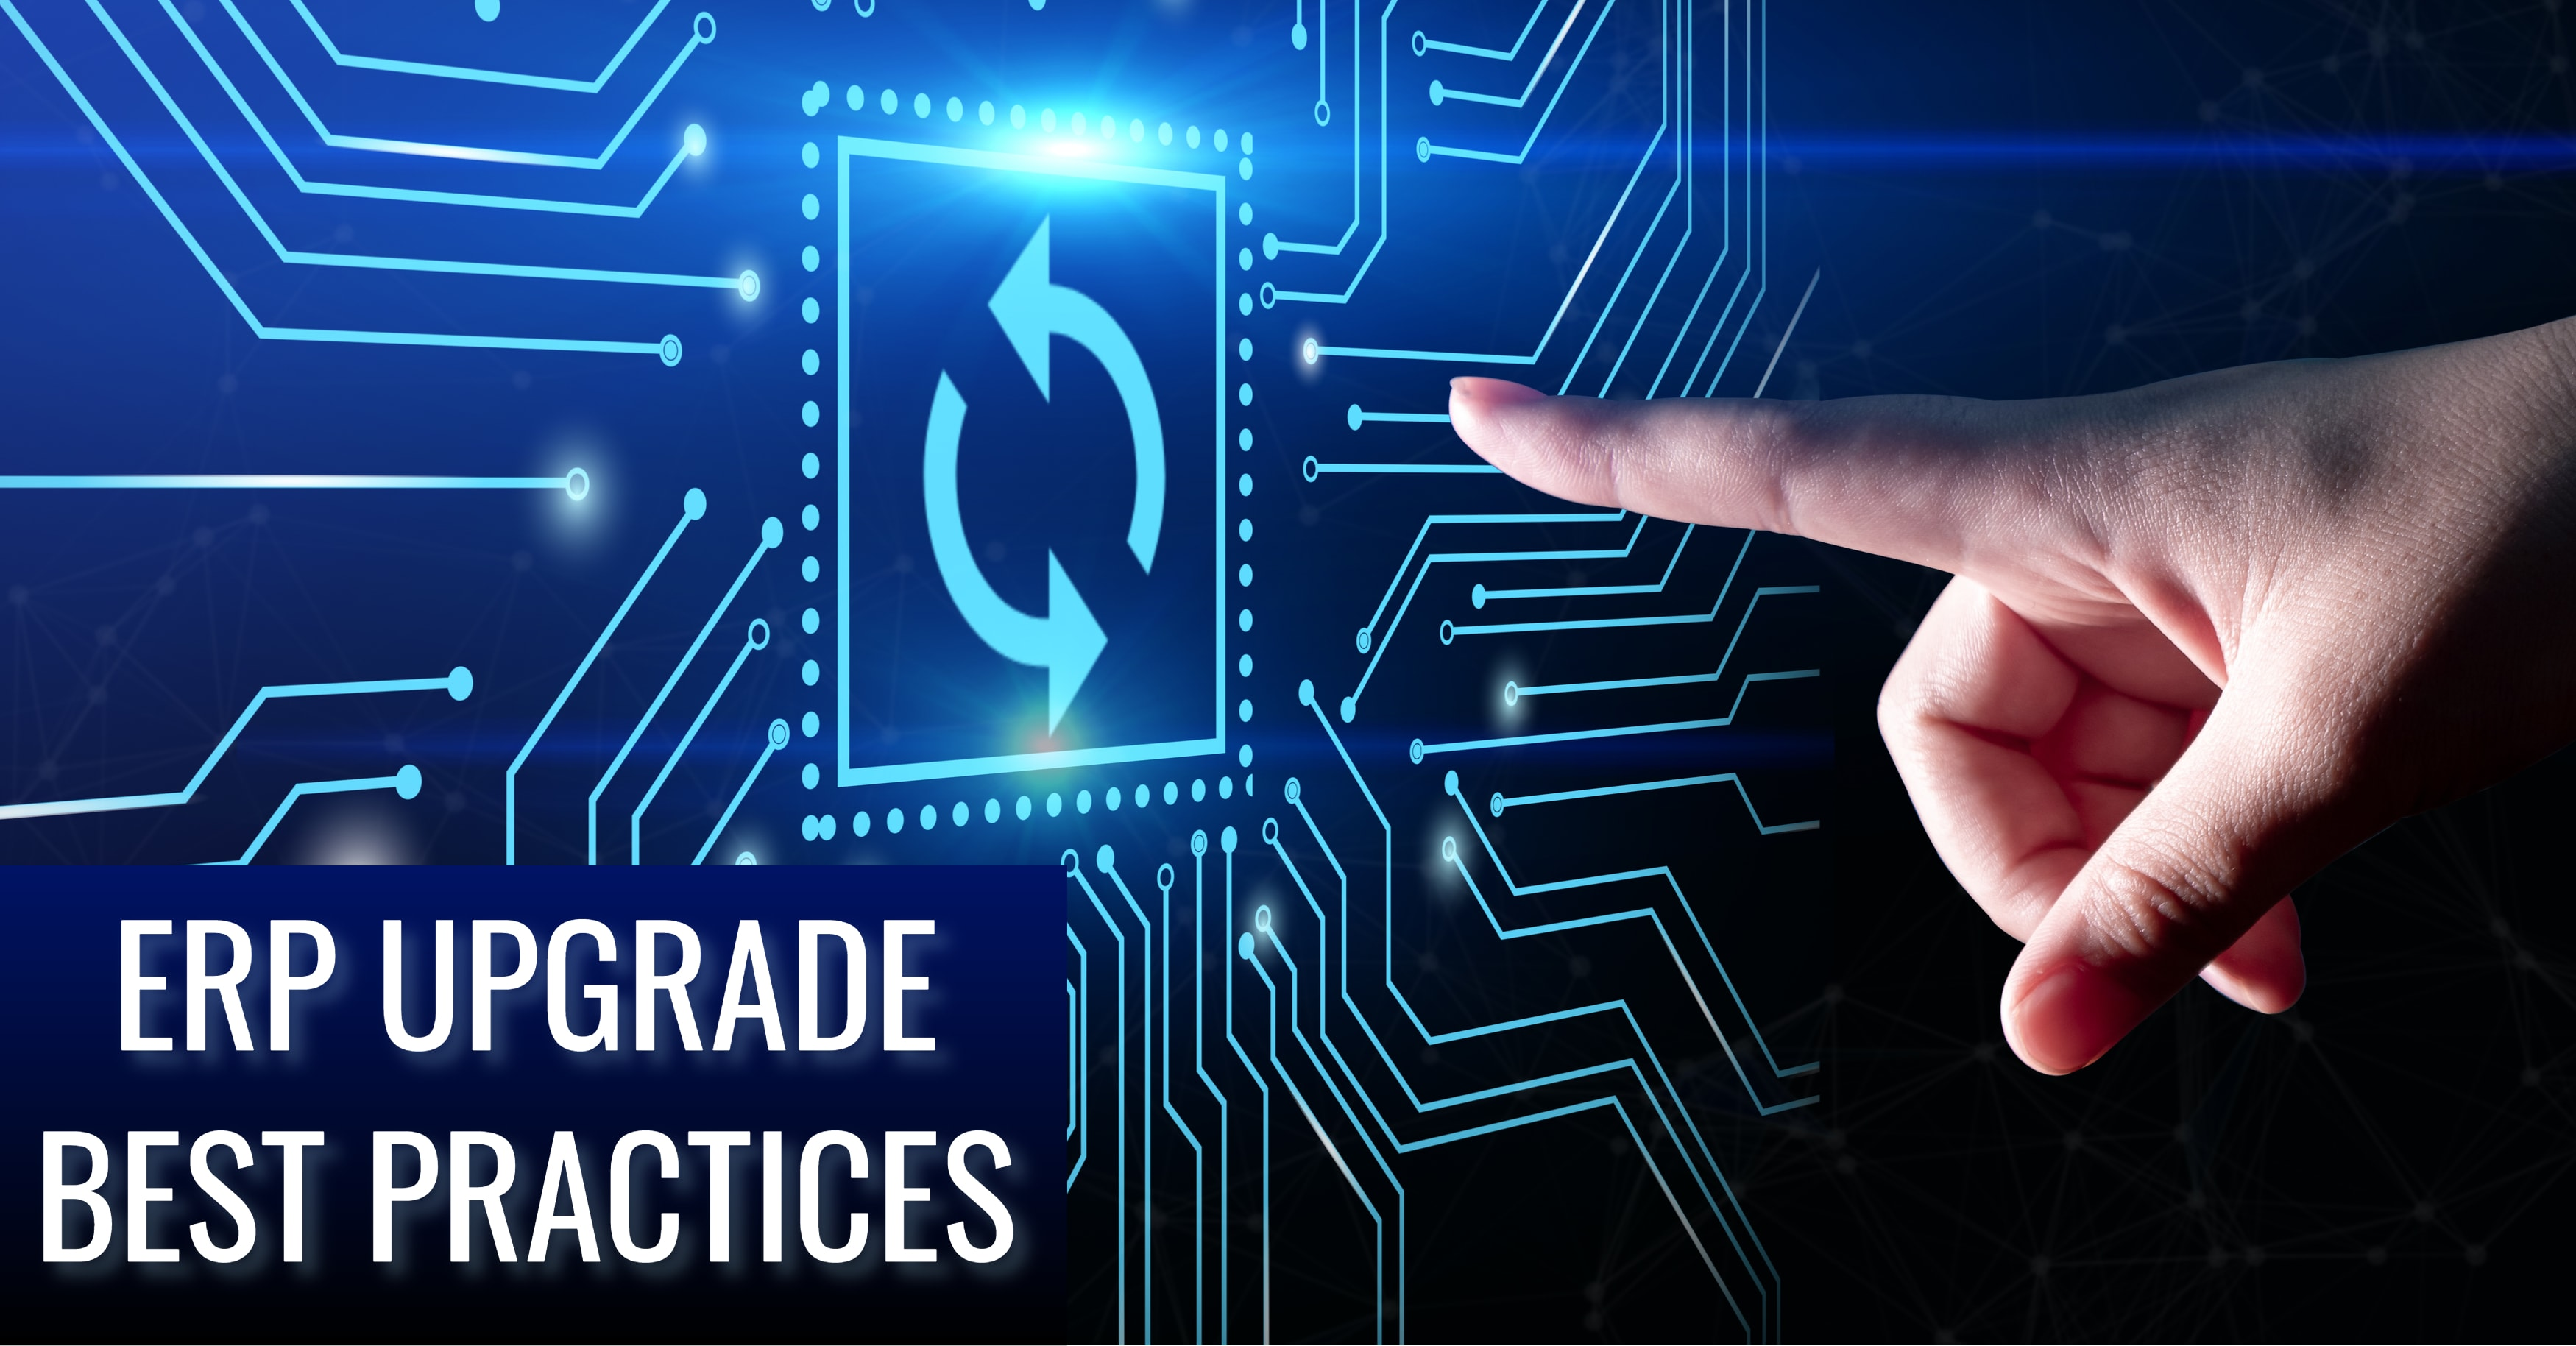 5 ERP Upgrade Best Practices